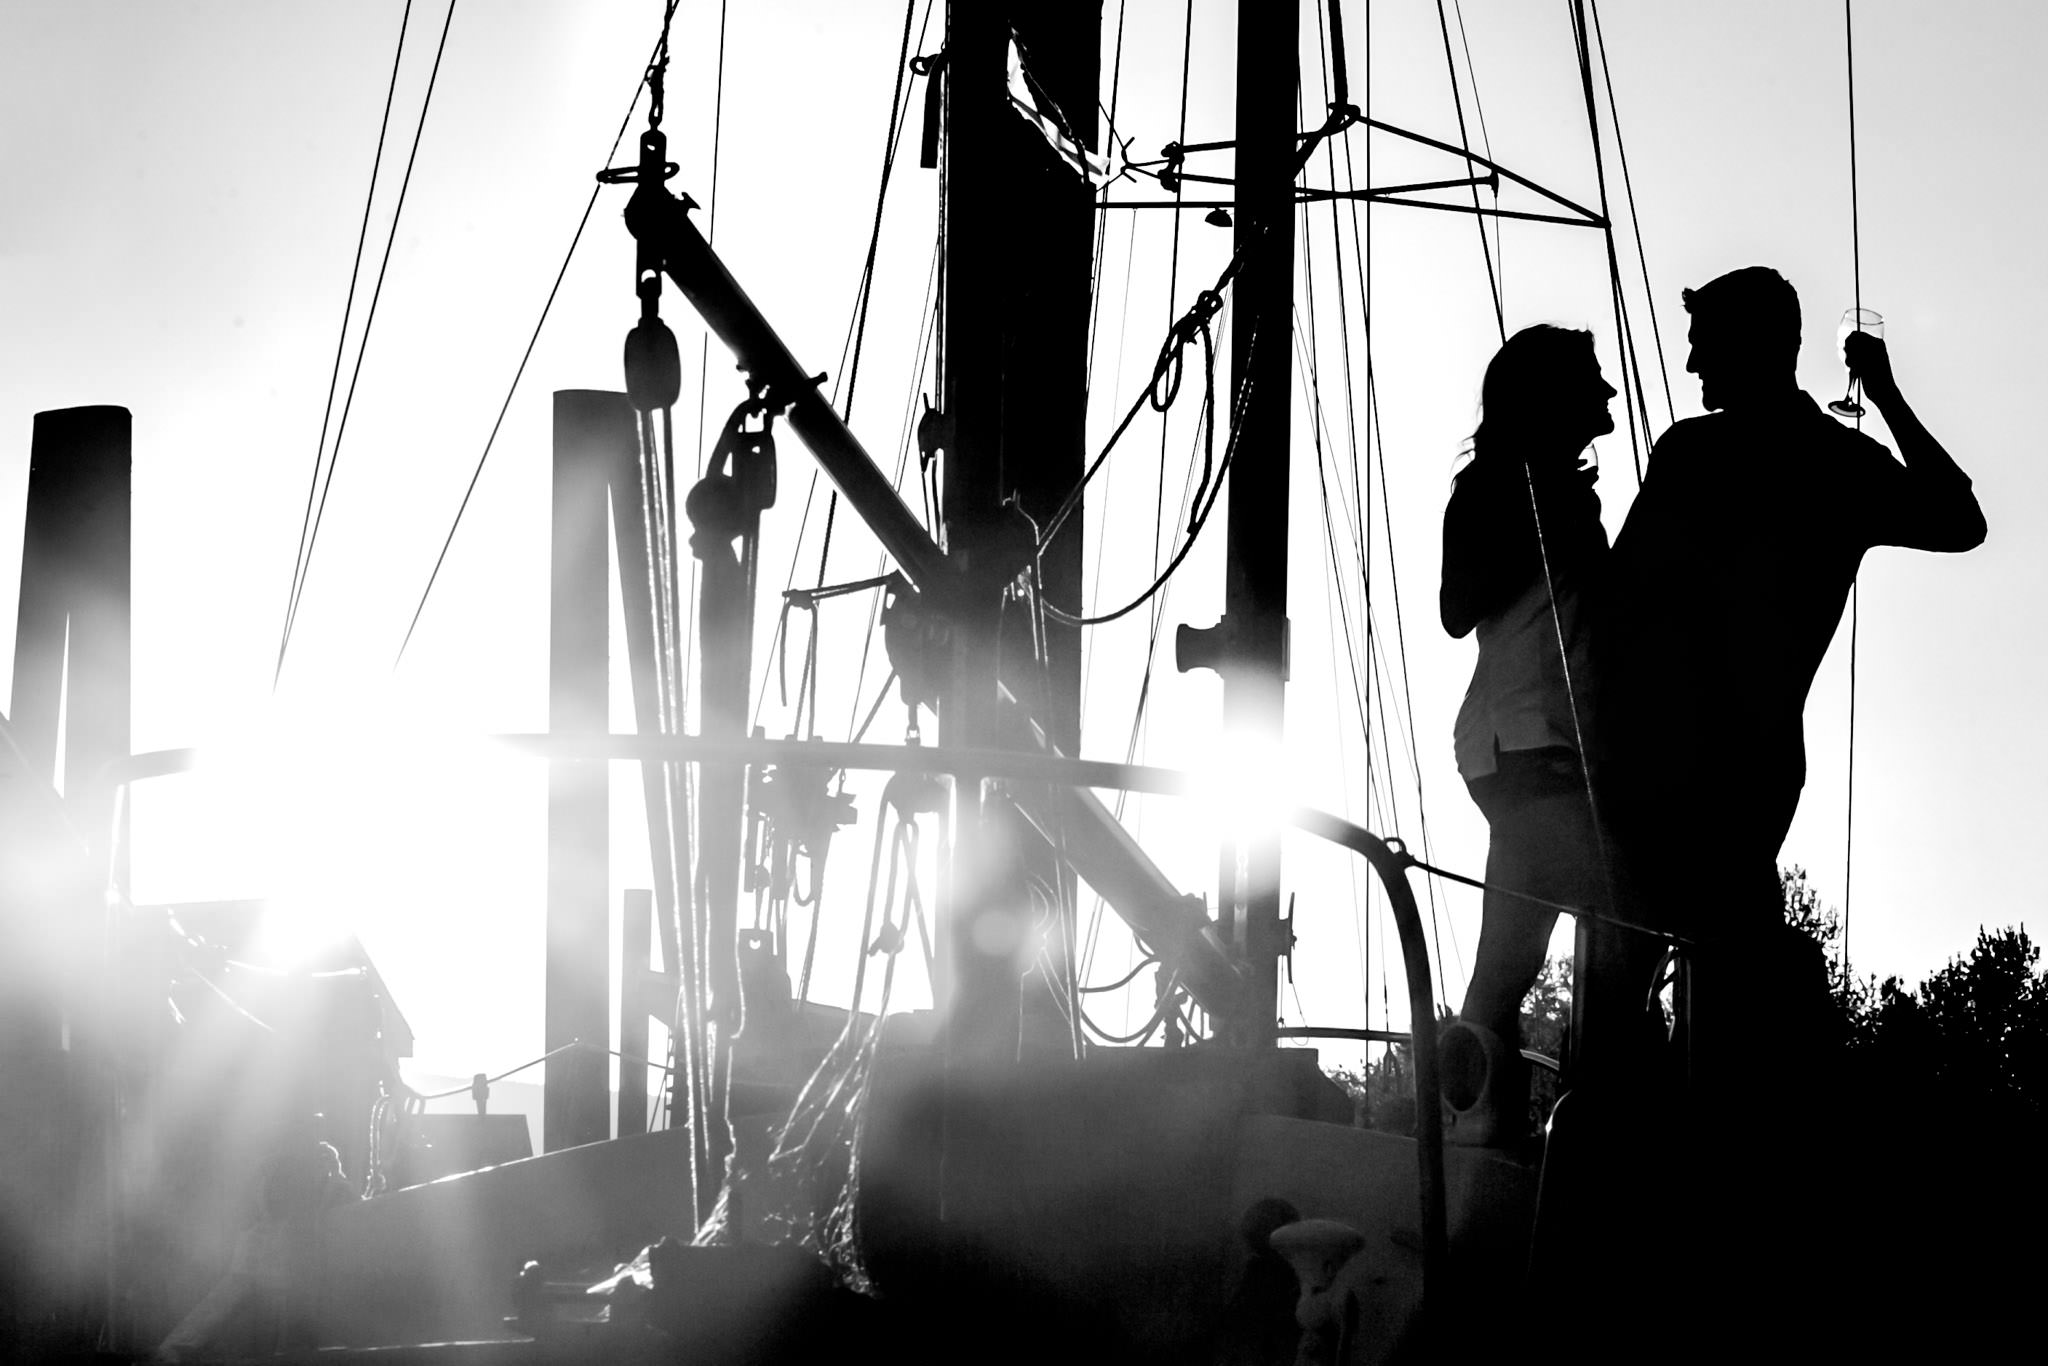 Engagement portrait of couple on sail boat at sunset with silhouettes